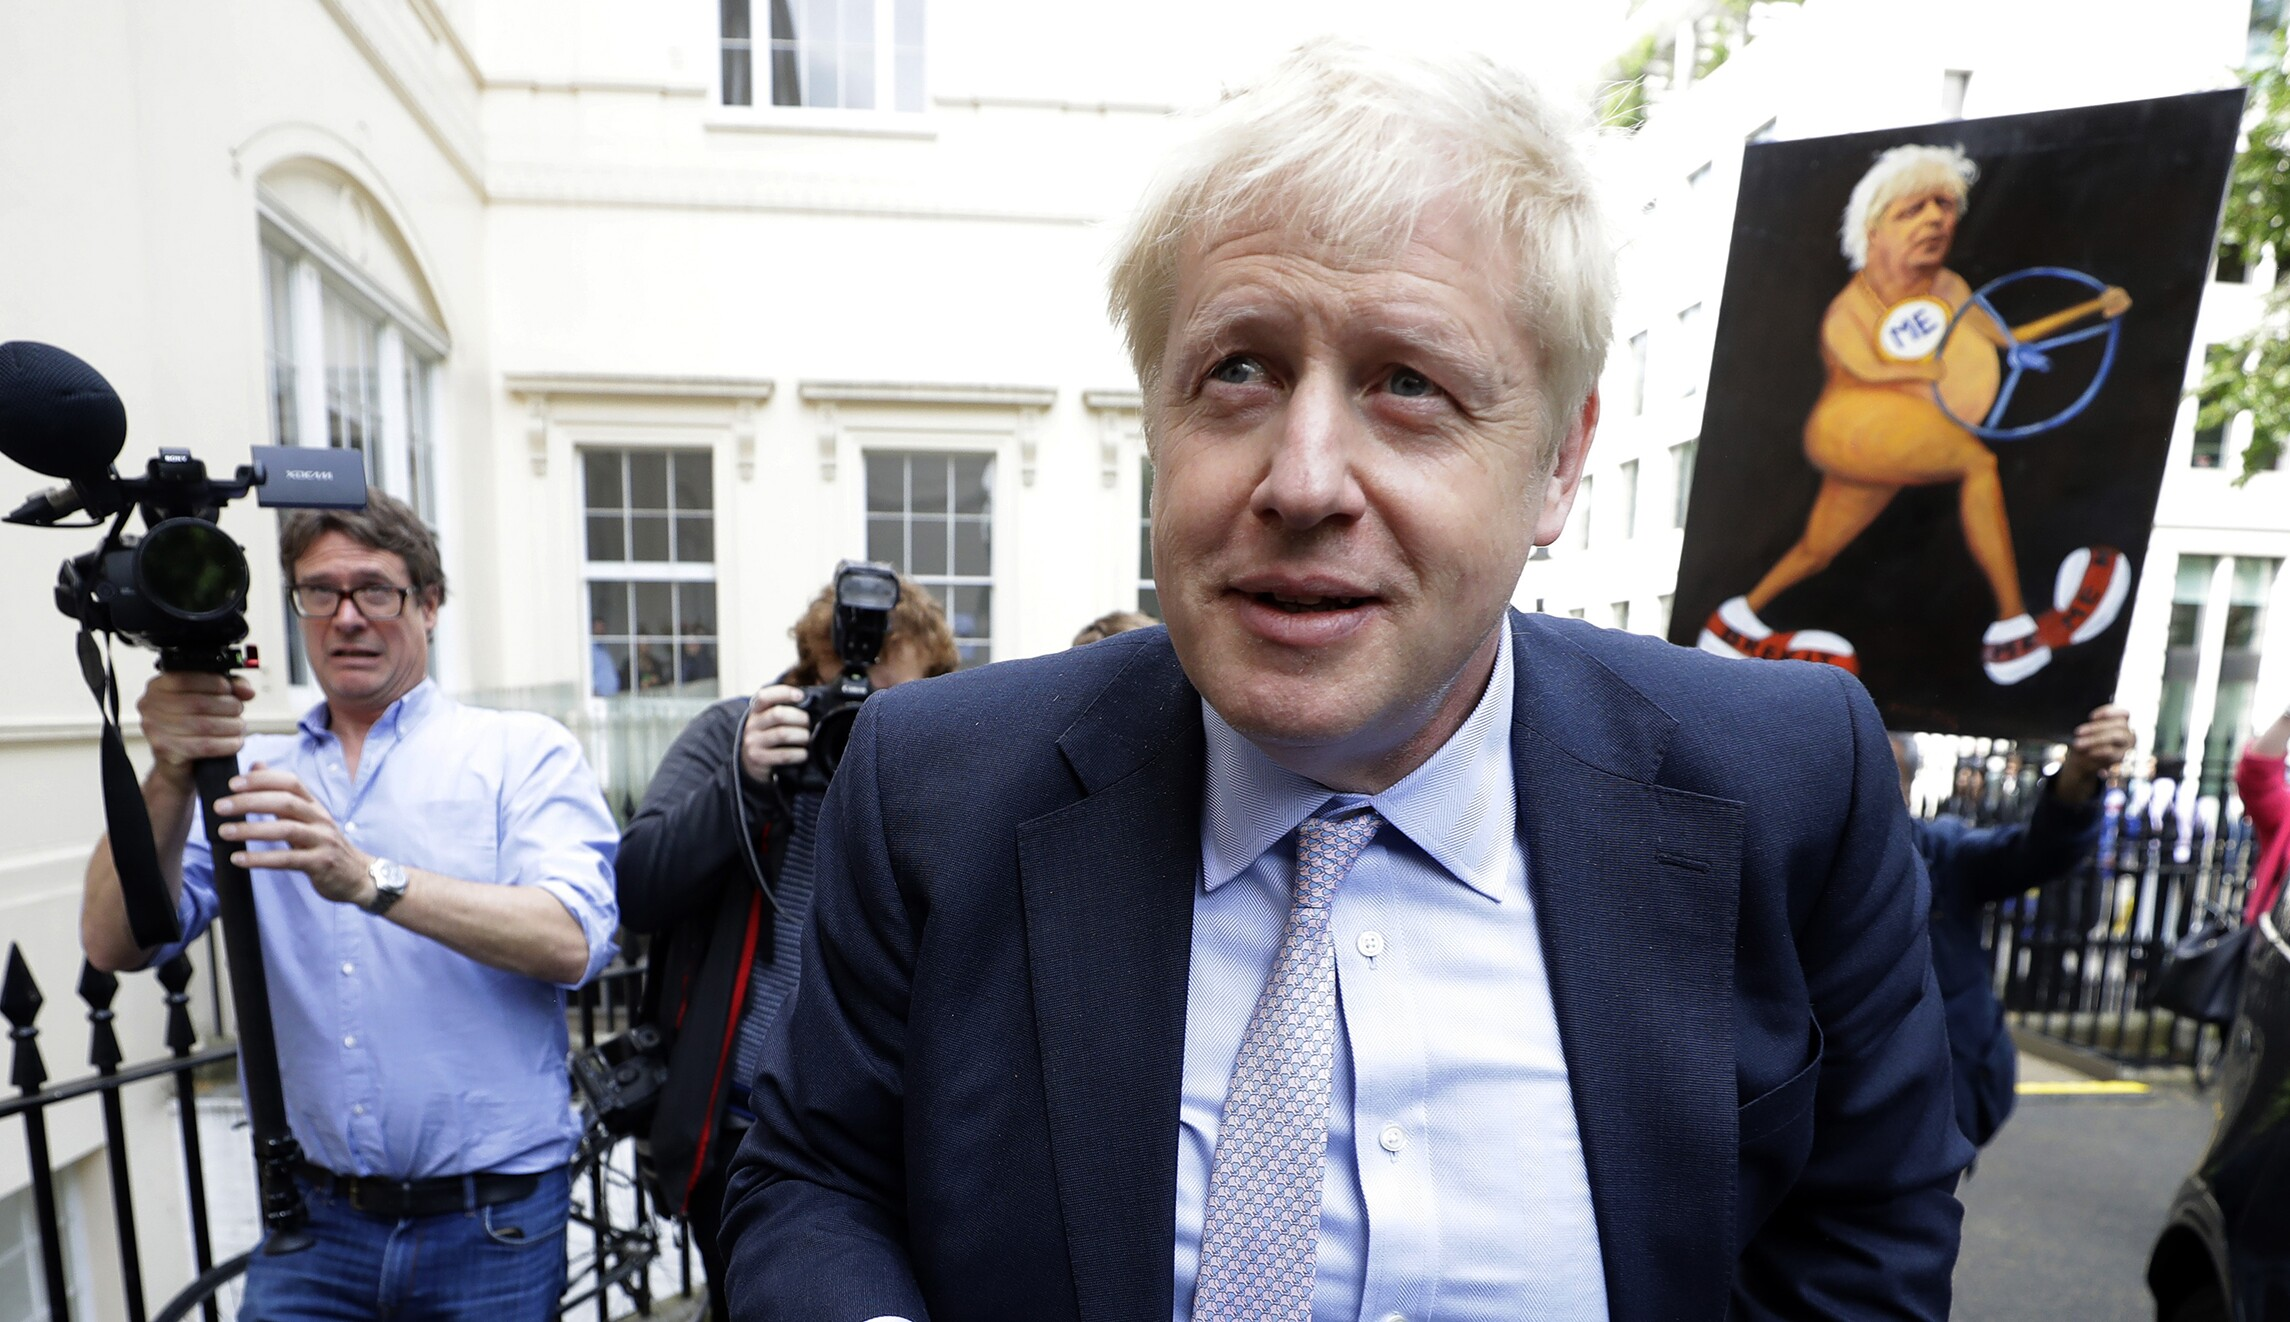 Boris Johnson sides with Huawei, locking the UK out of our fight against China